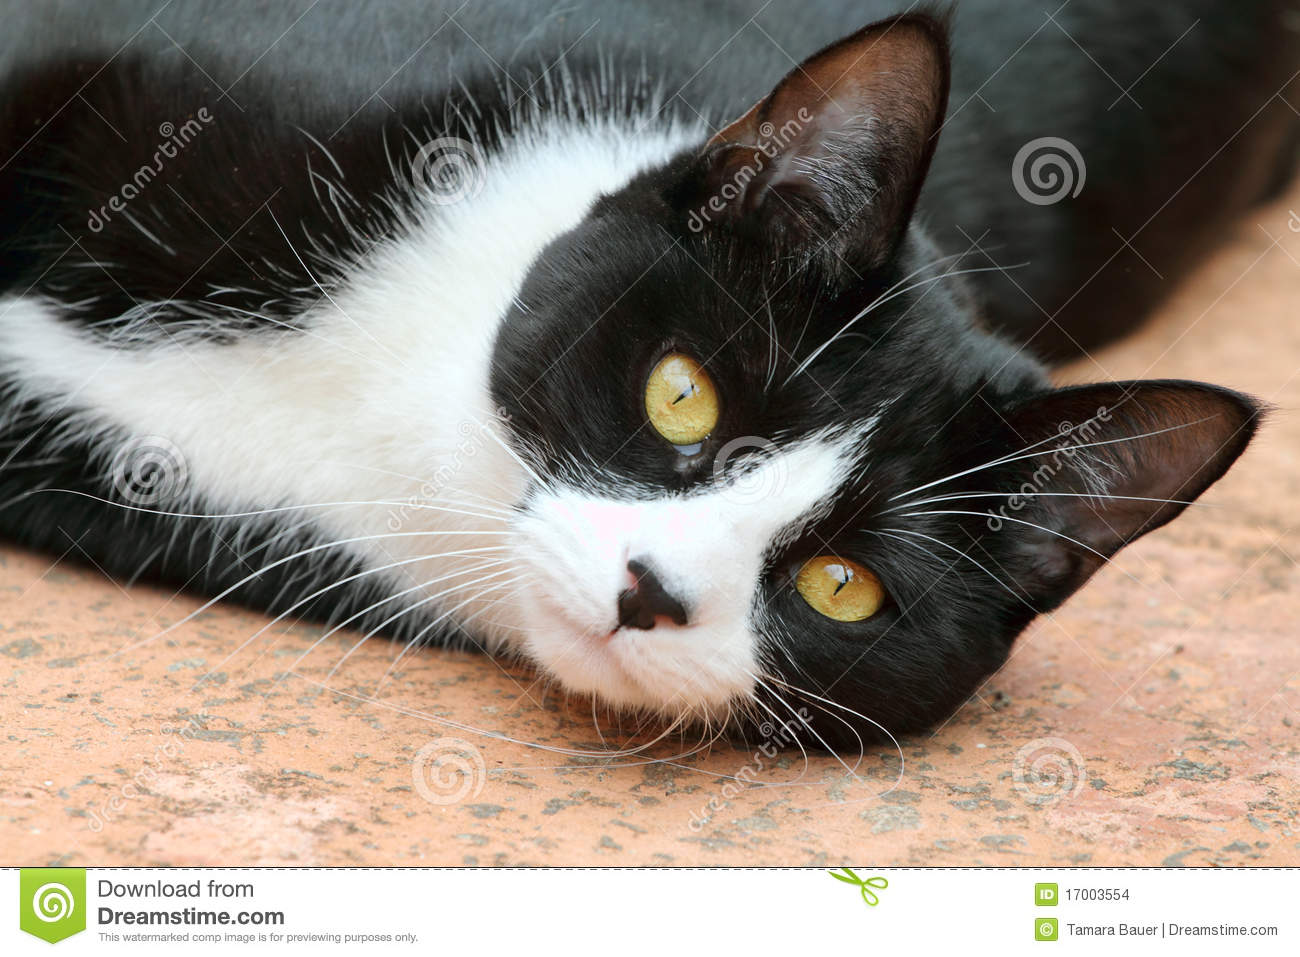 Cute black and white tuxedo cat